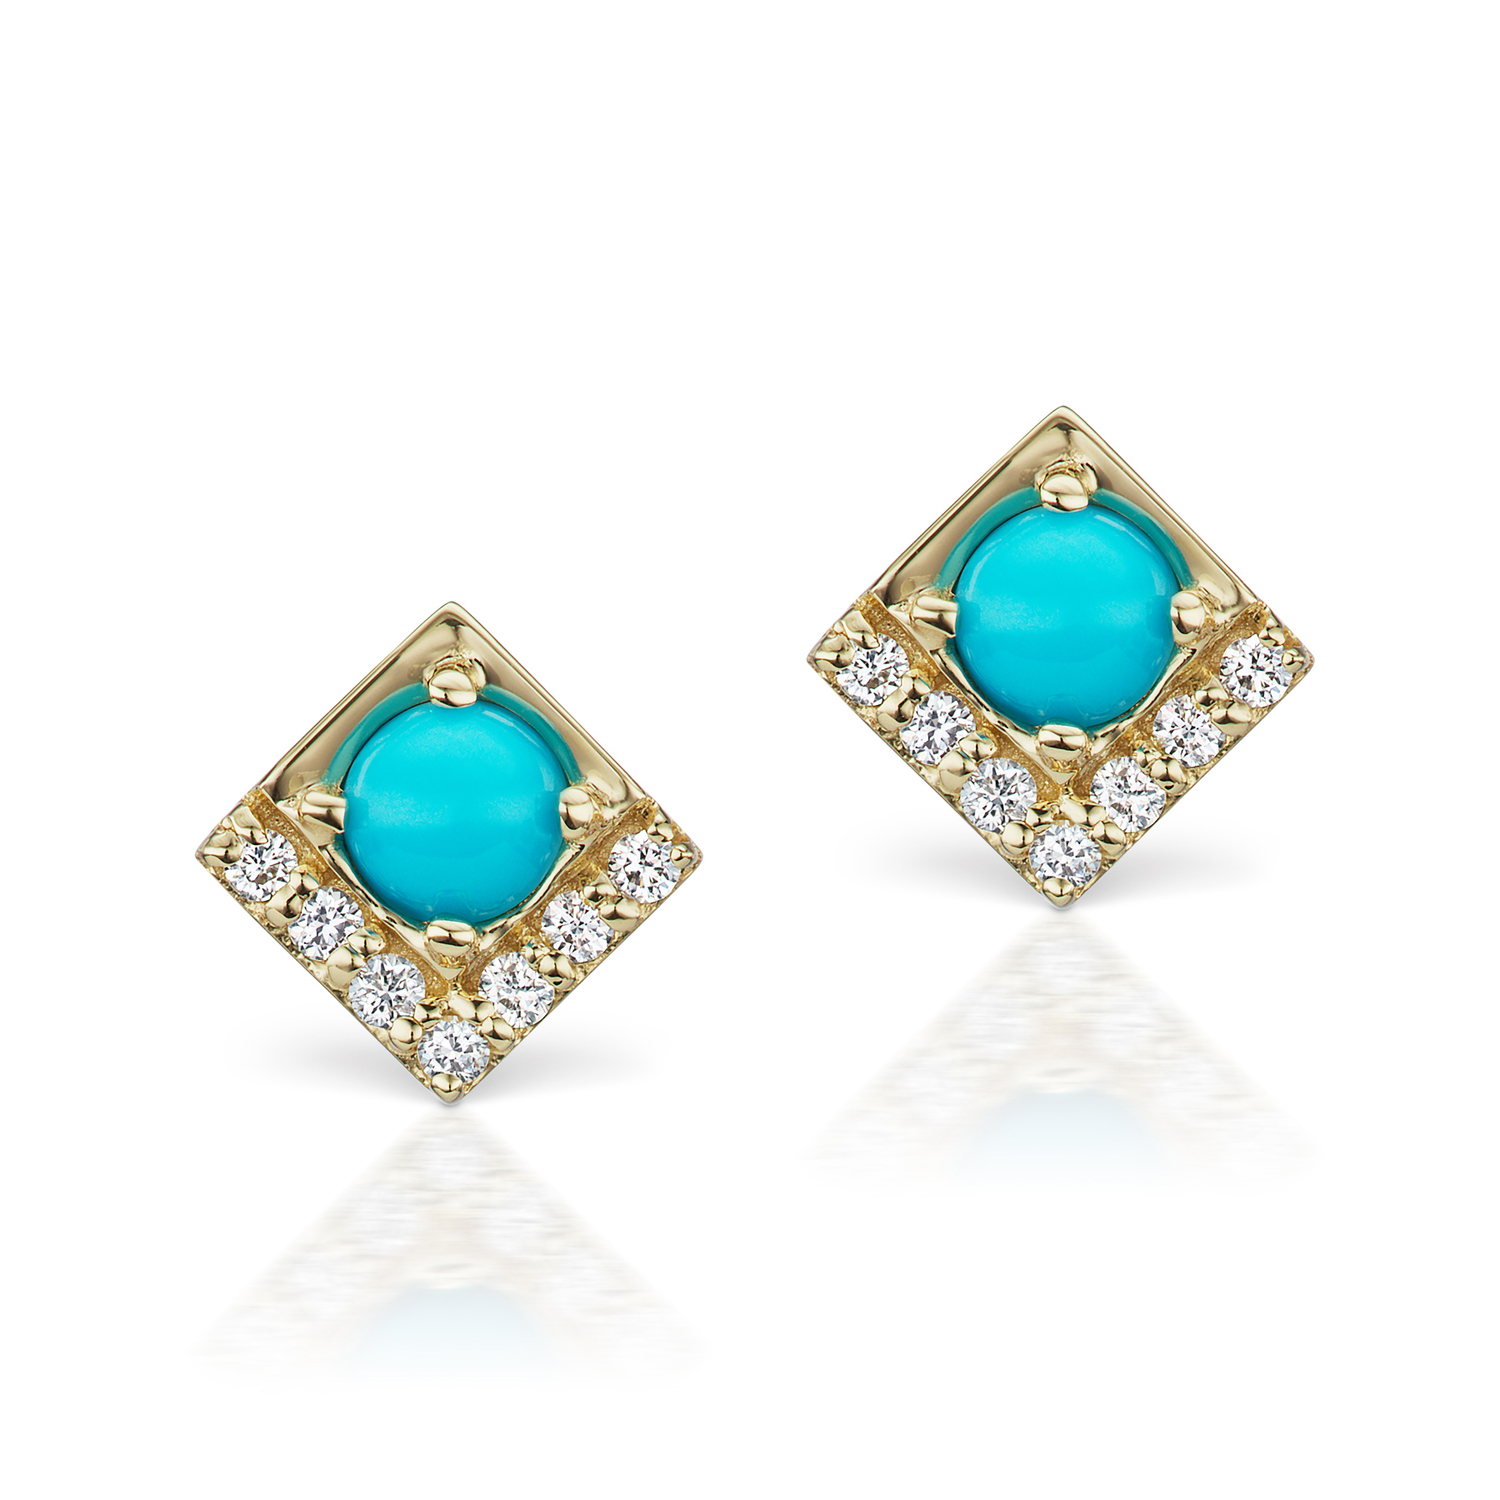 Cirque Petite Square Stud Earrings With Turquoise As Seen In Jck